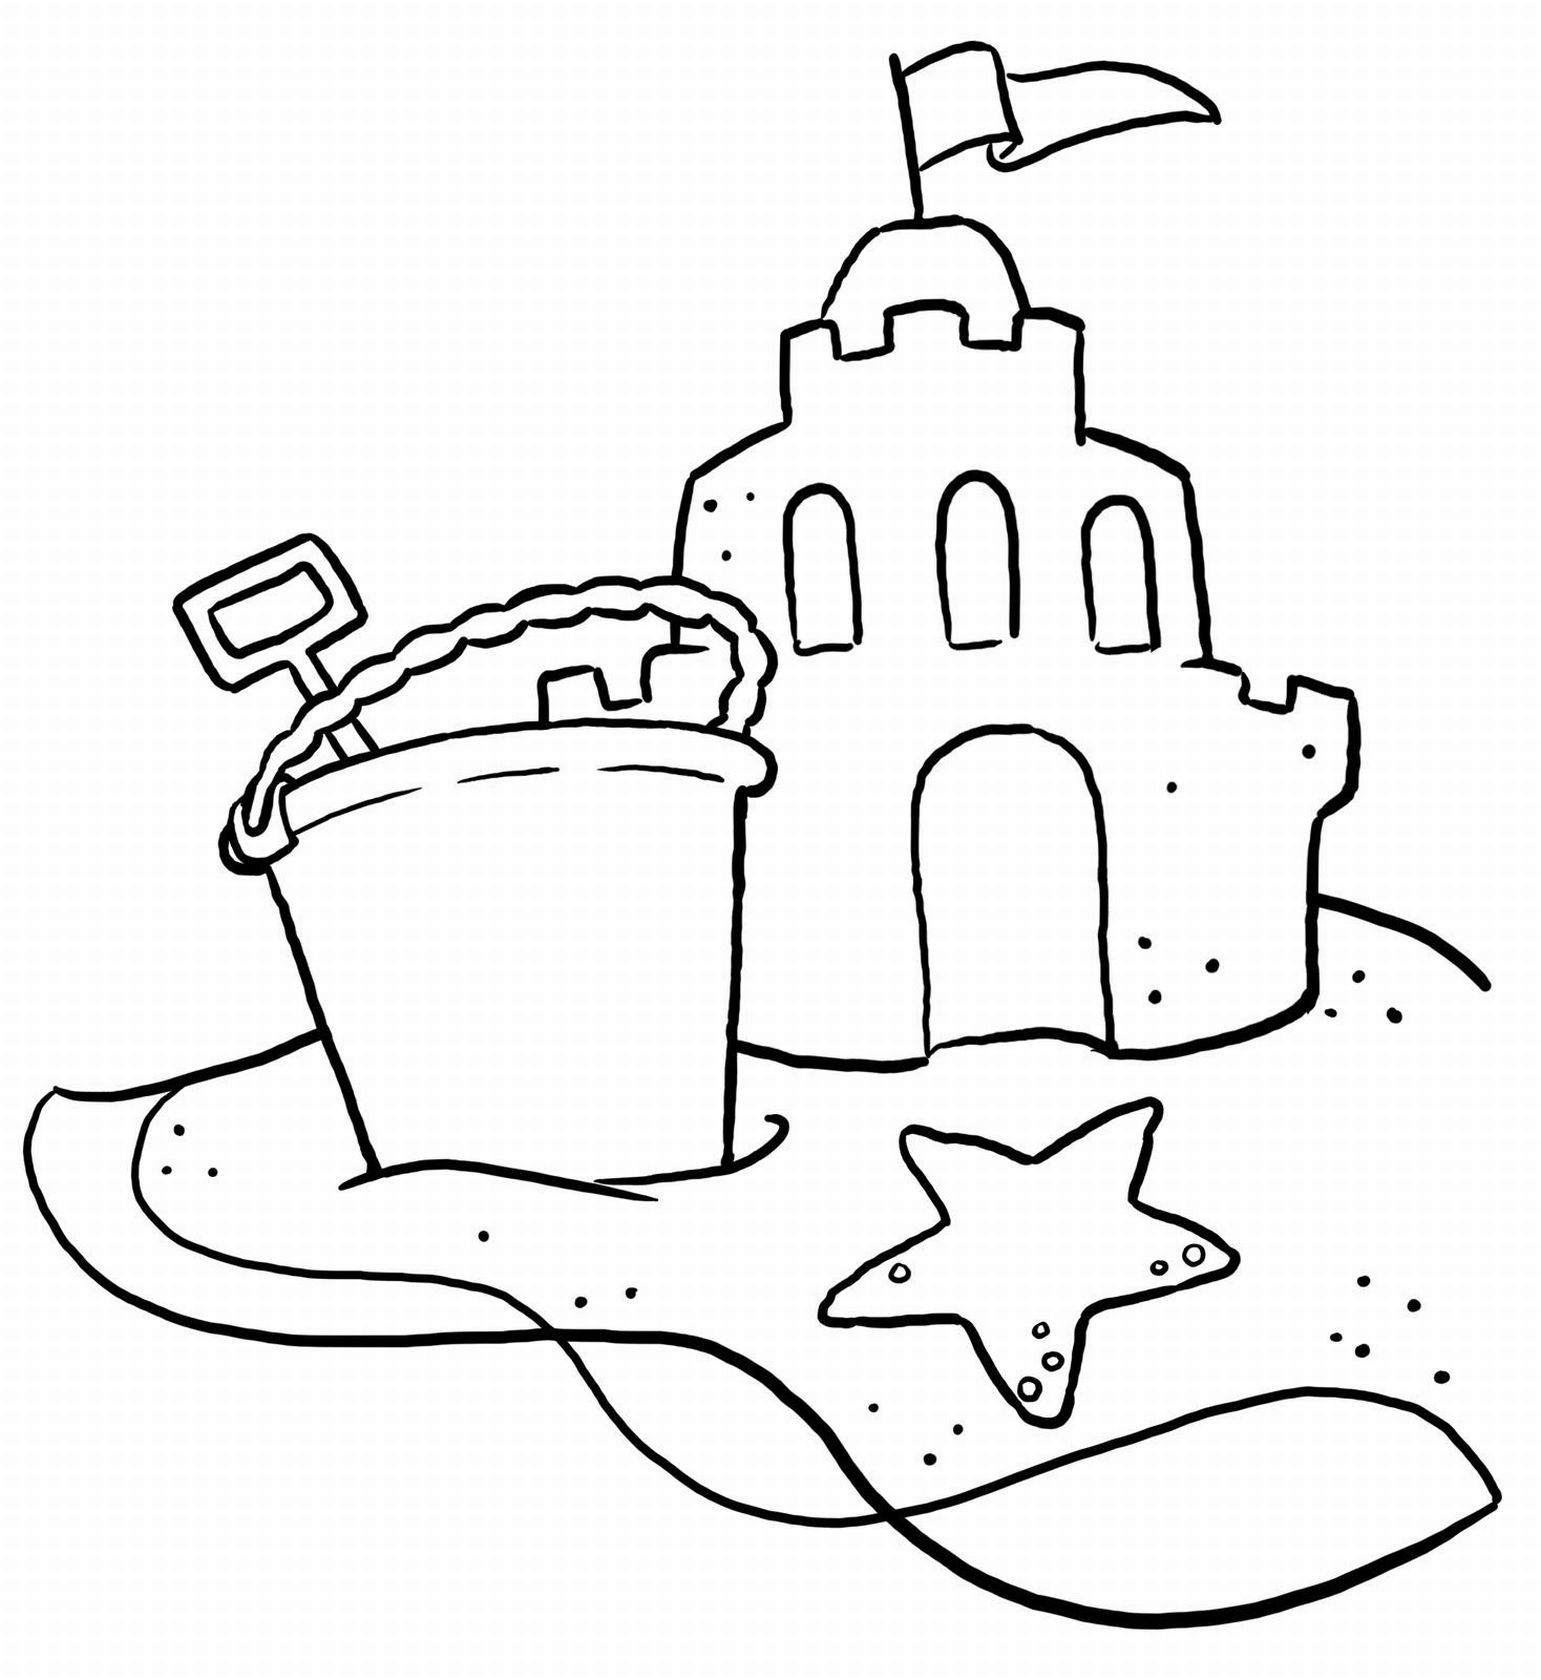 beach scene coloring pages beach coloring pages getcoloringpagescom coloring beach scene pages